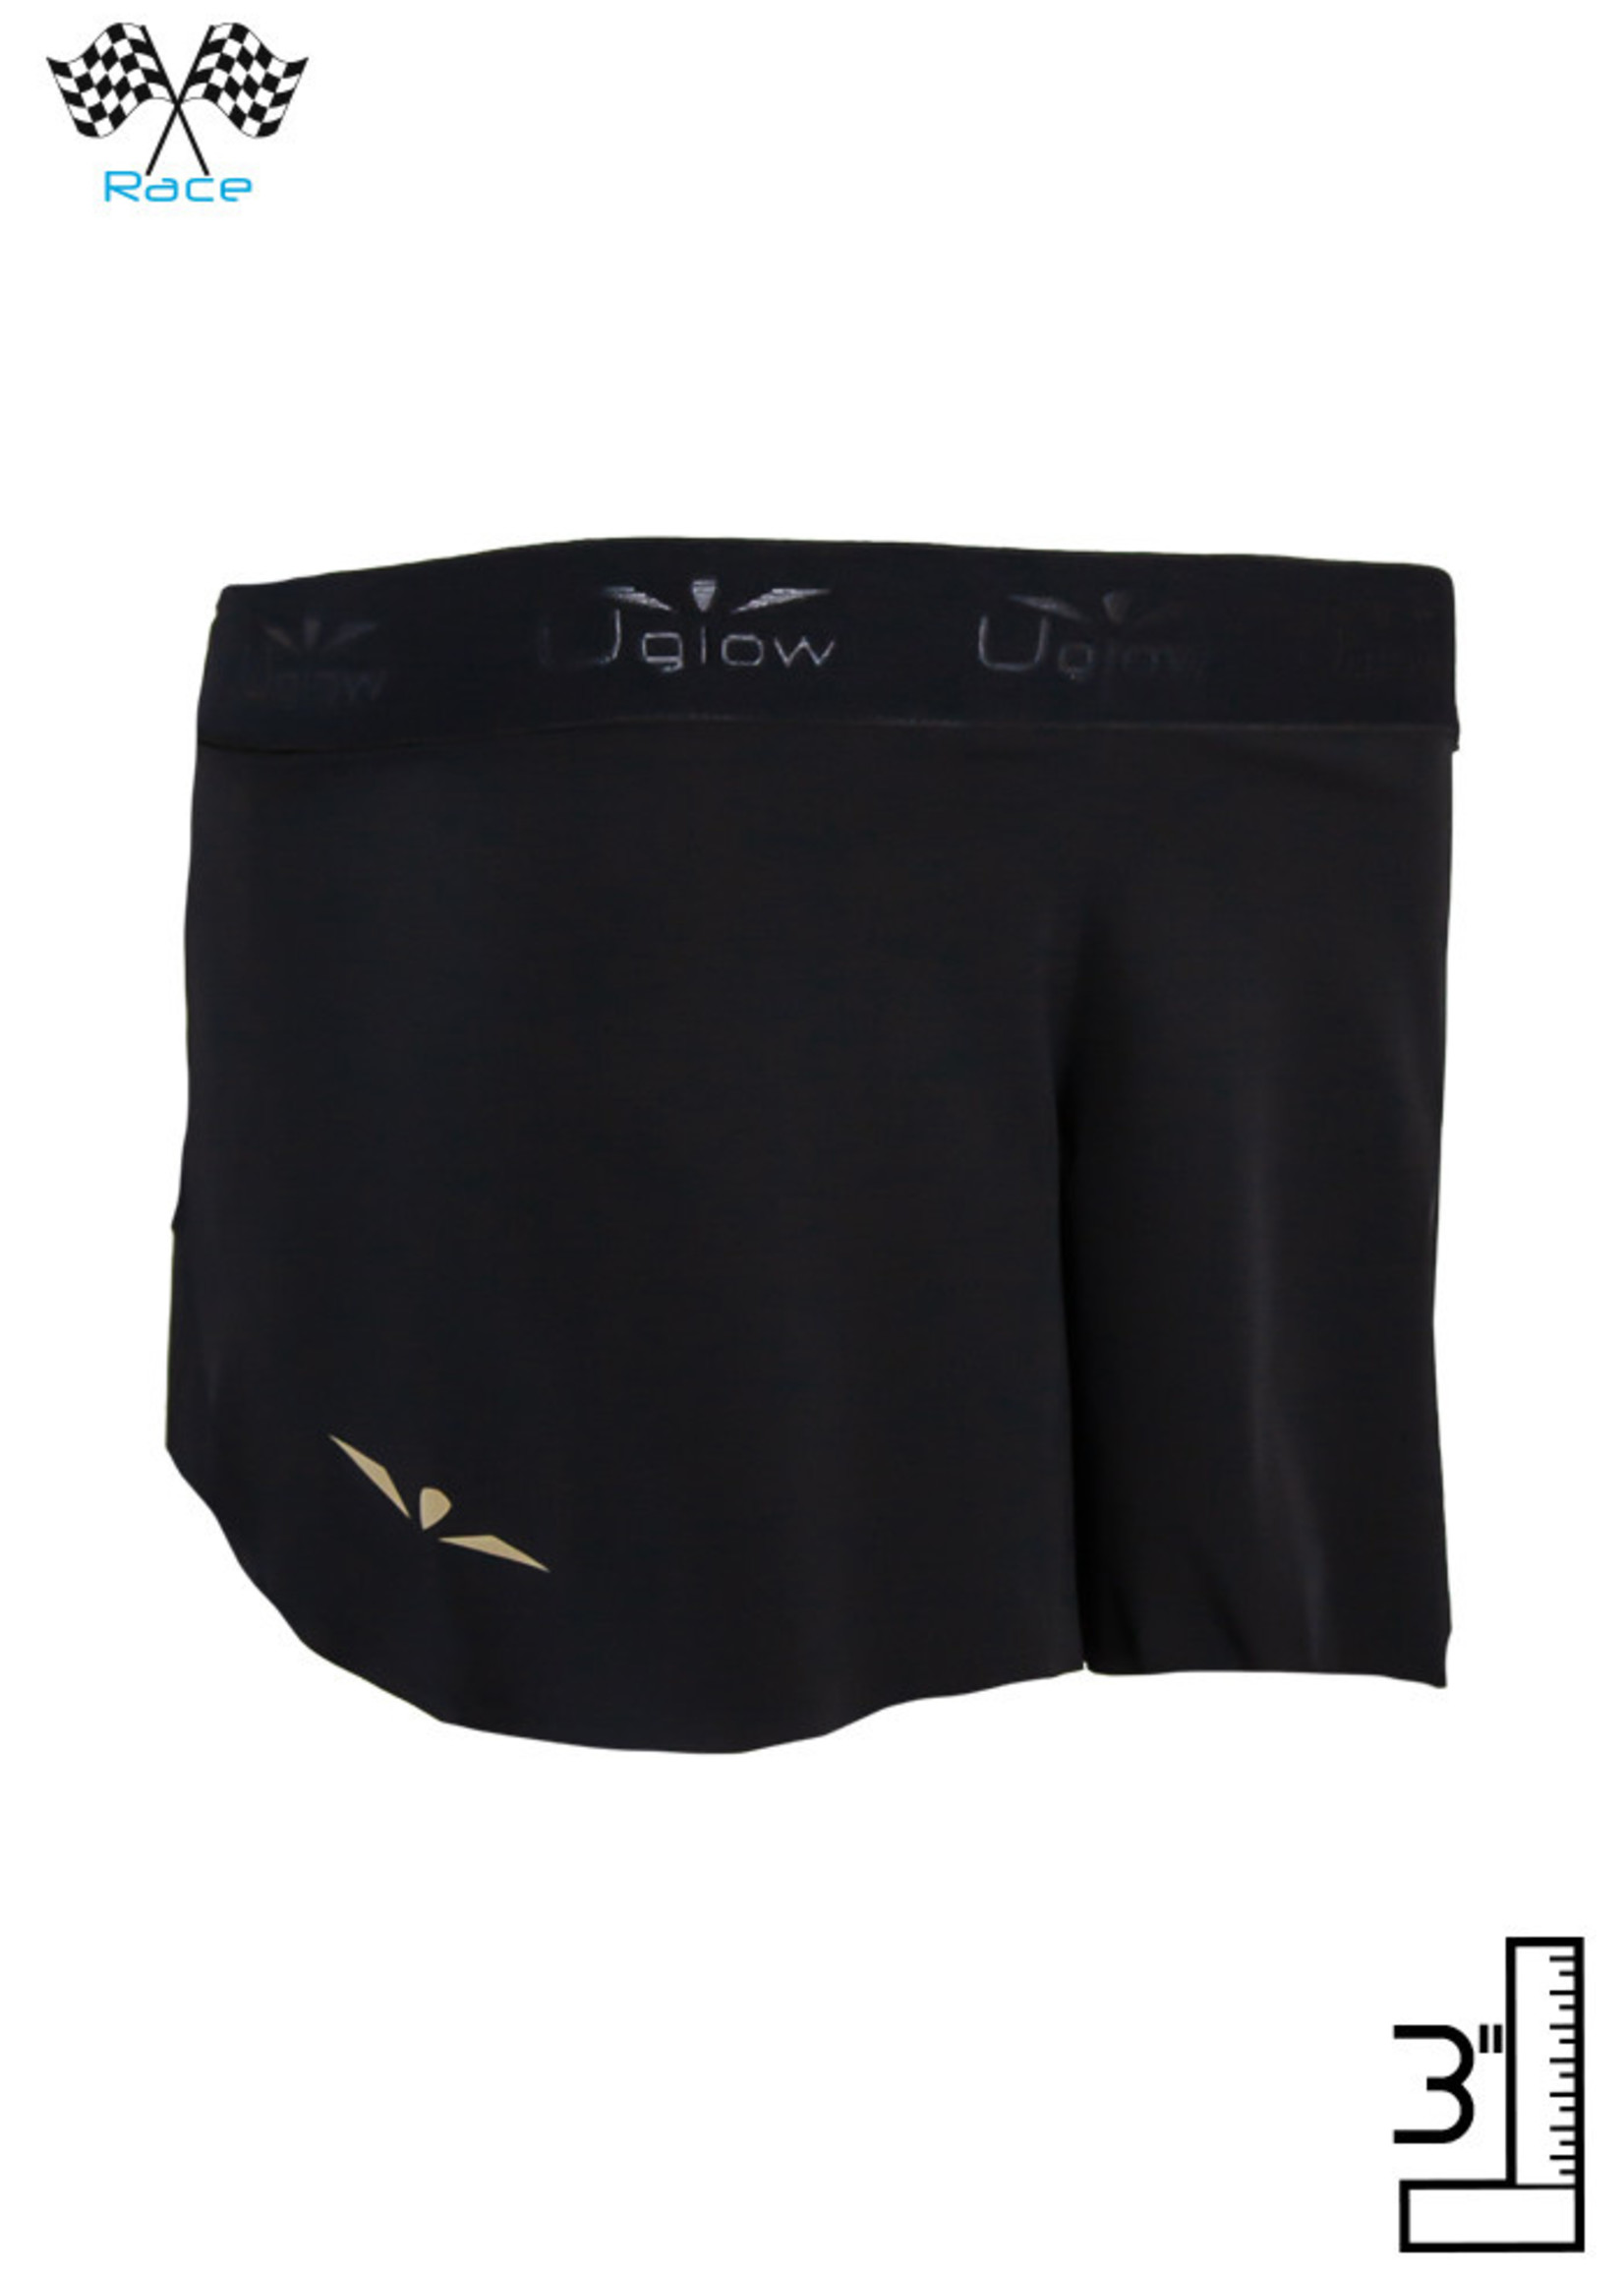 Uglow Sport Uglow RACE Tanga Short 3 Women's